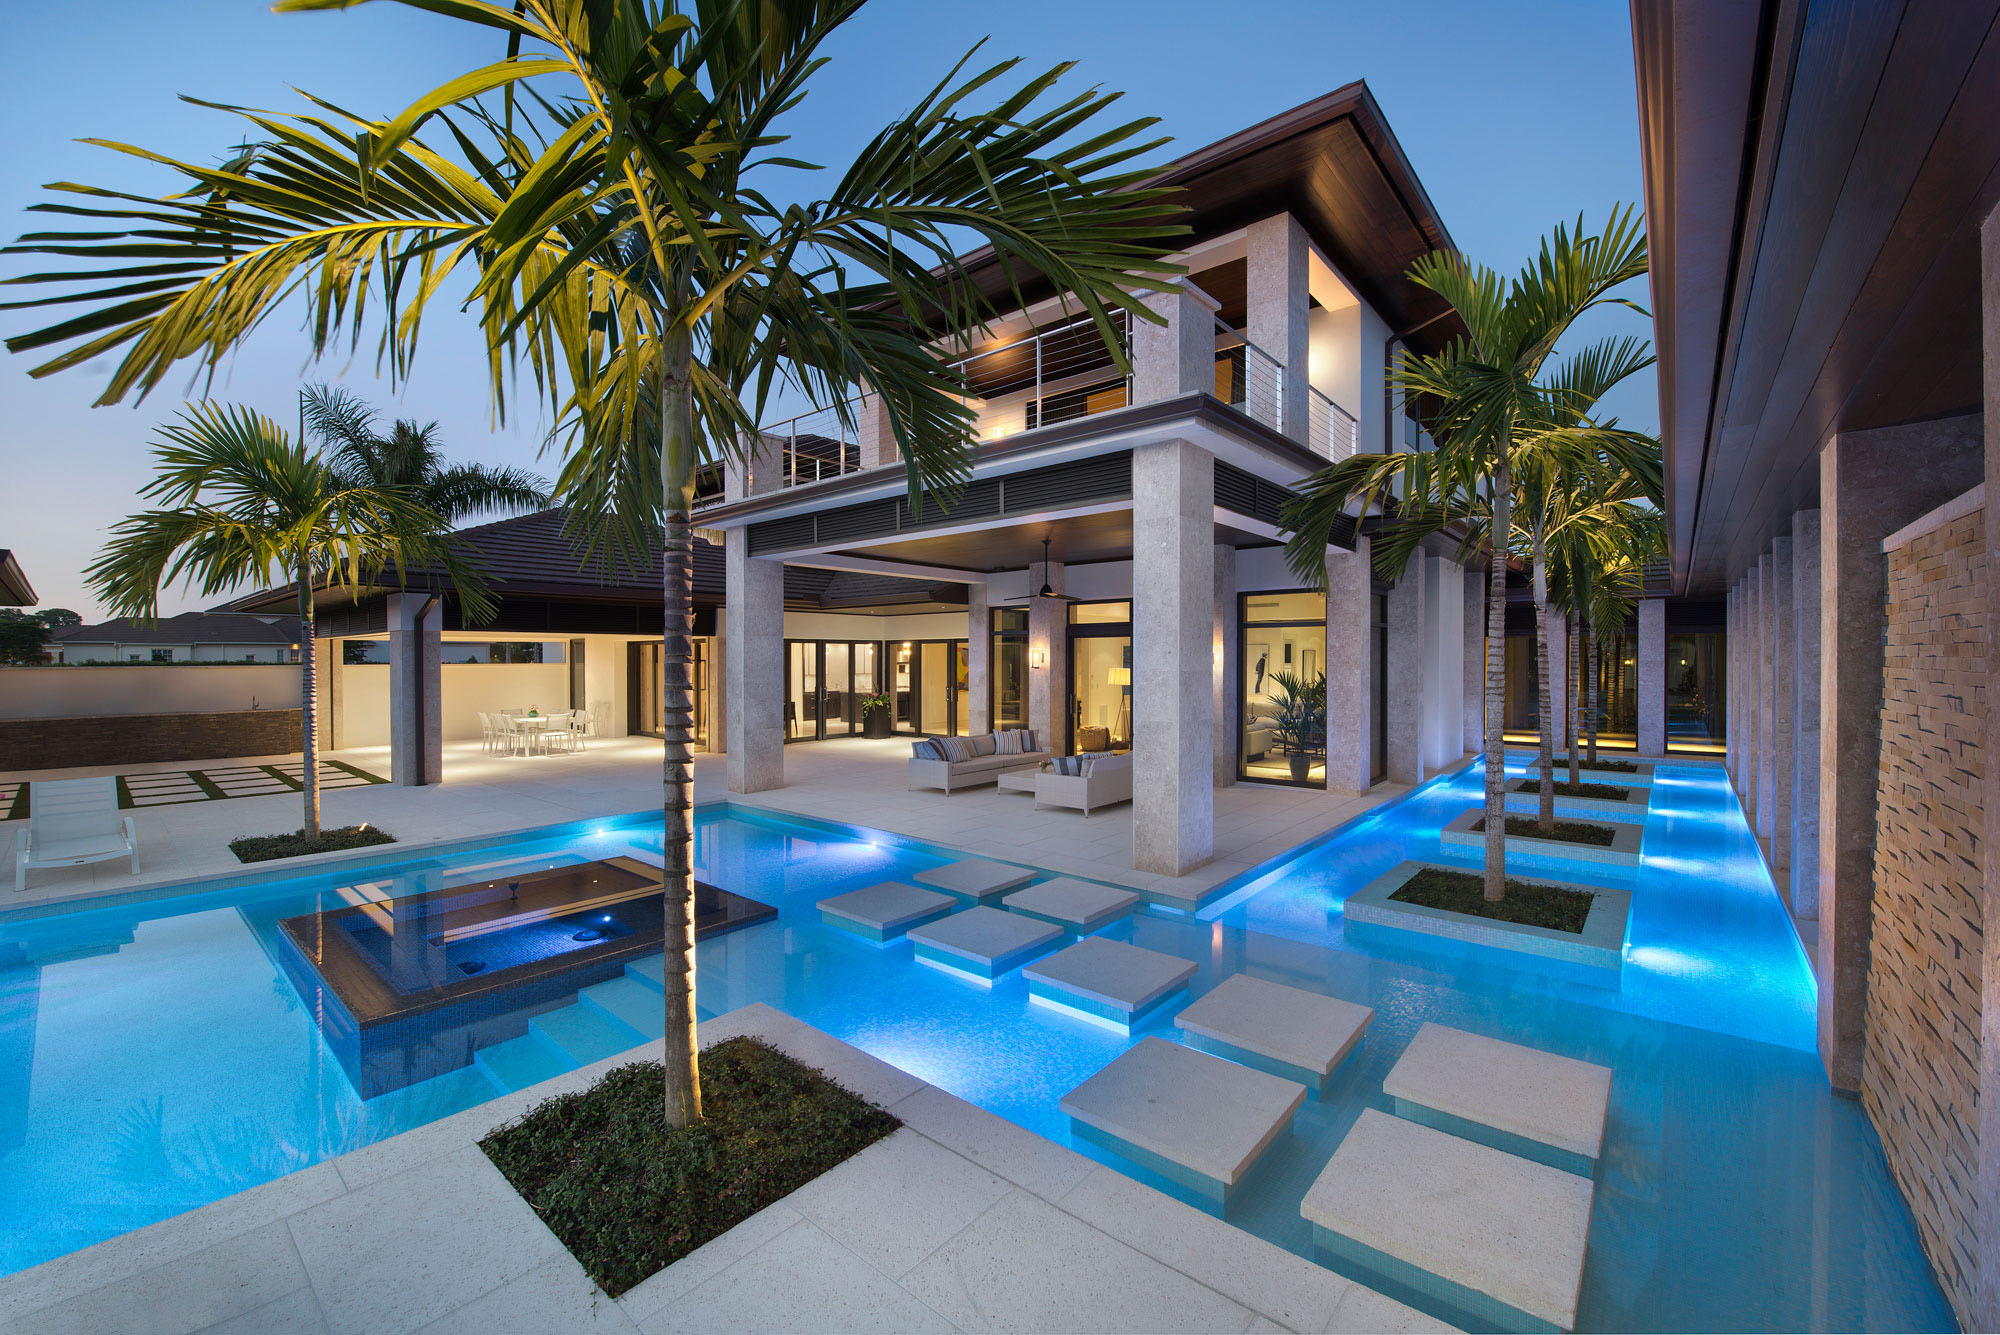 Custom dream home in florida with elegant swimming pool for Beautiful house designs with swimming pool